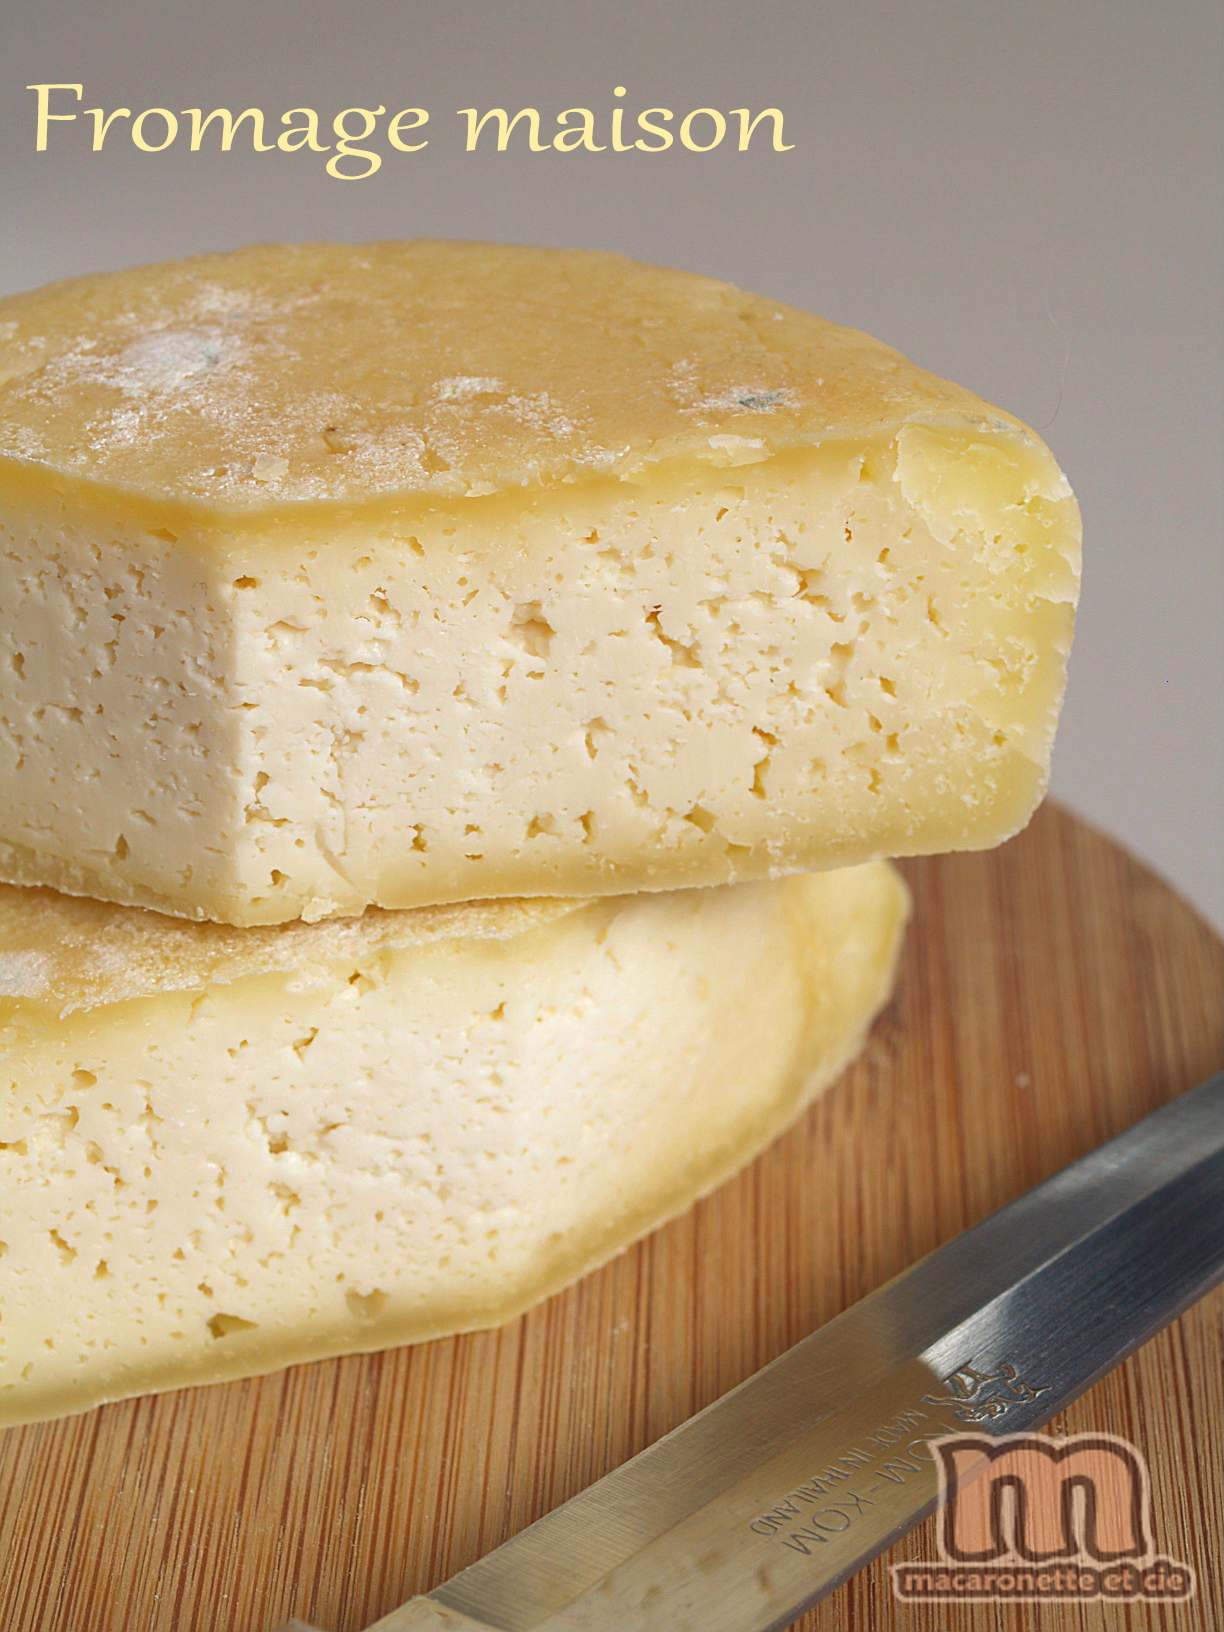 Faire Son Fromage Blanc : faire, fromage, blanc, Fromage, Maison, Macaronette